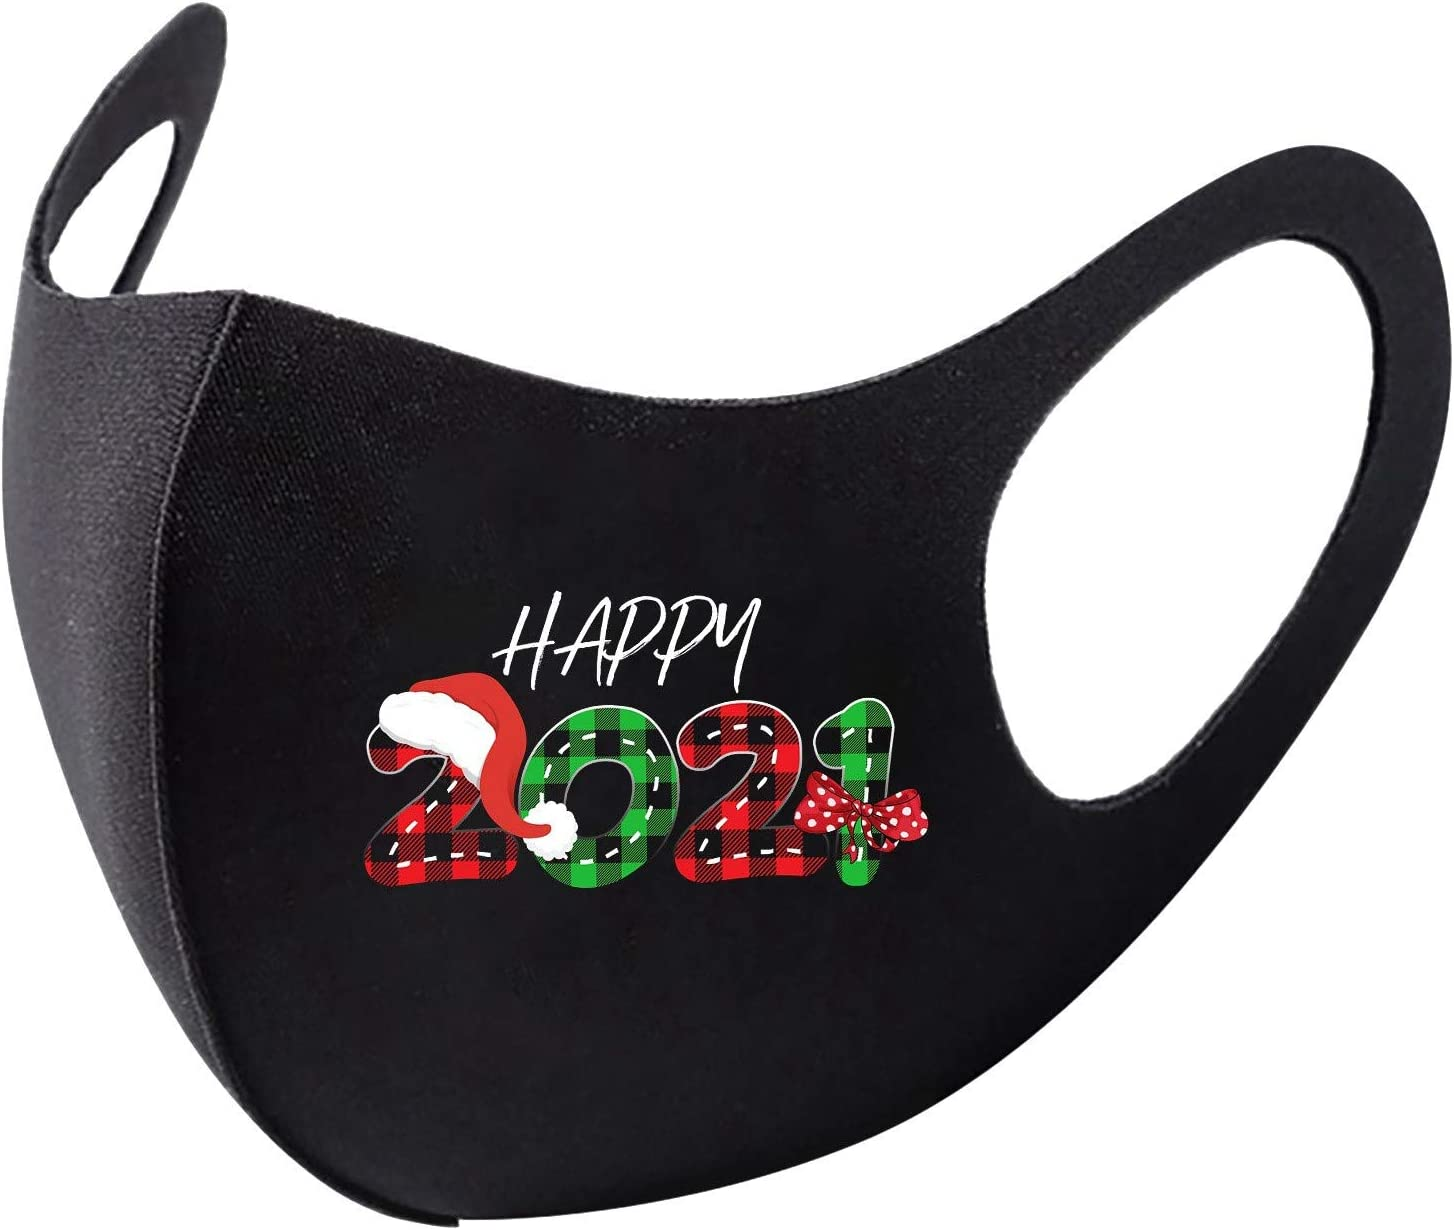 BEUU 1PCS Happy New Year 2021 Face Mack Fashion Design Washable Reusable for Outdoor and Indoor Full Face Protection